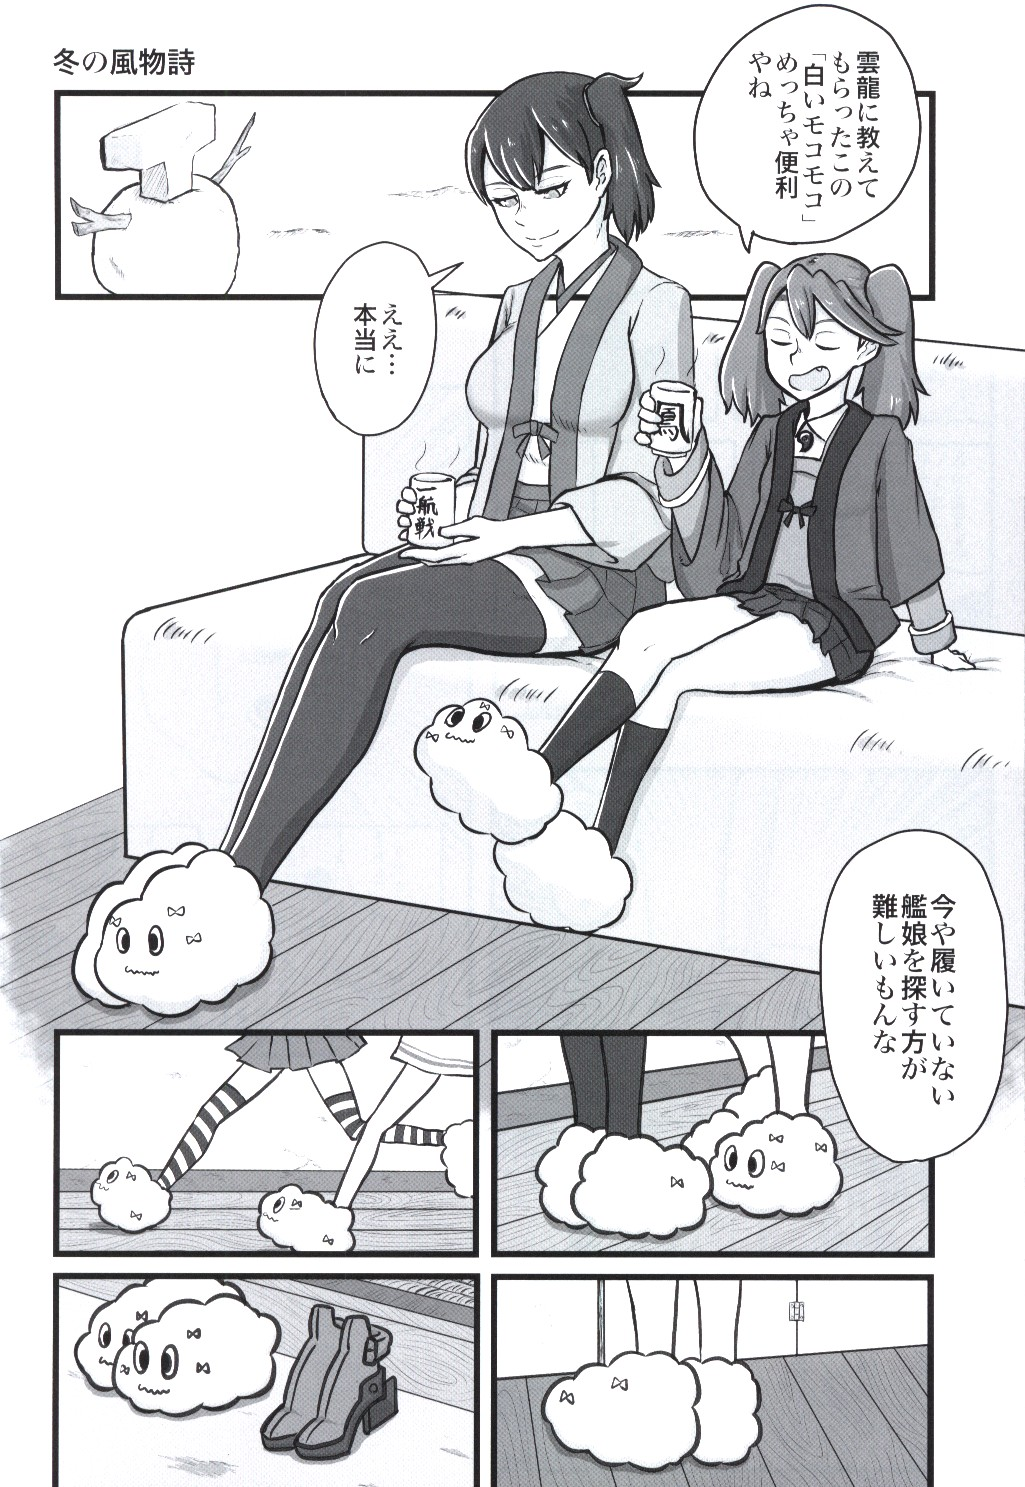 Doujinshi - Kantai Collection / Kaga & Ryujyou (忙しい毎日) / メビウスバンド